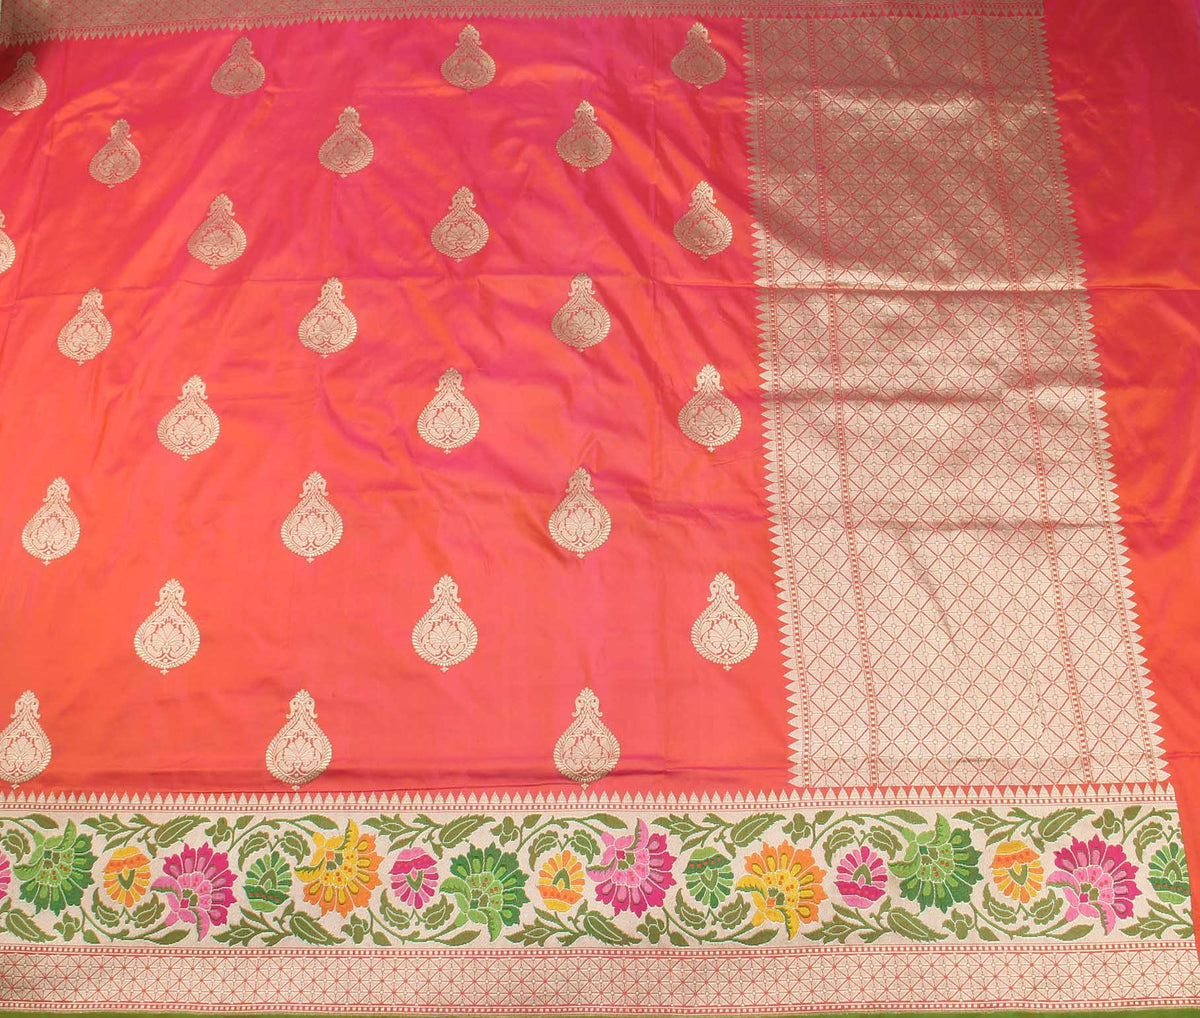 Salmon Katan Silk Handwoven Banarasi saree with stylized boota (2) flat